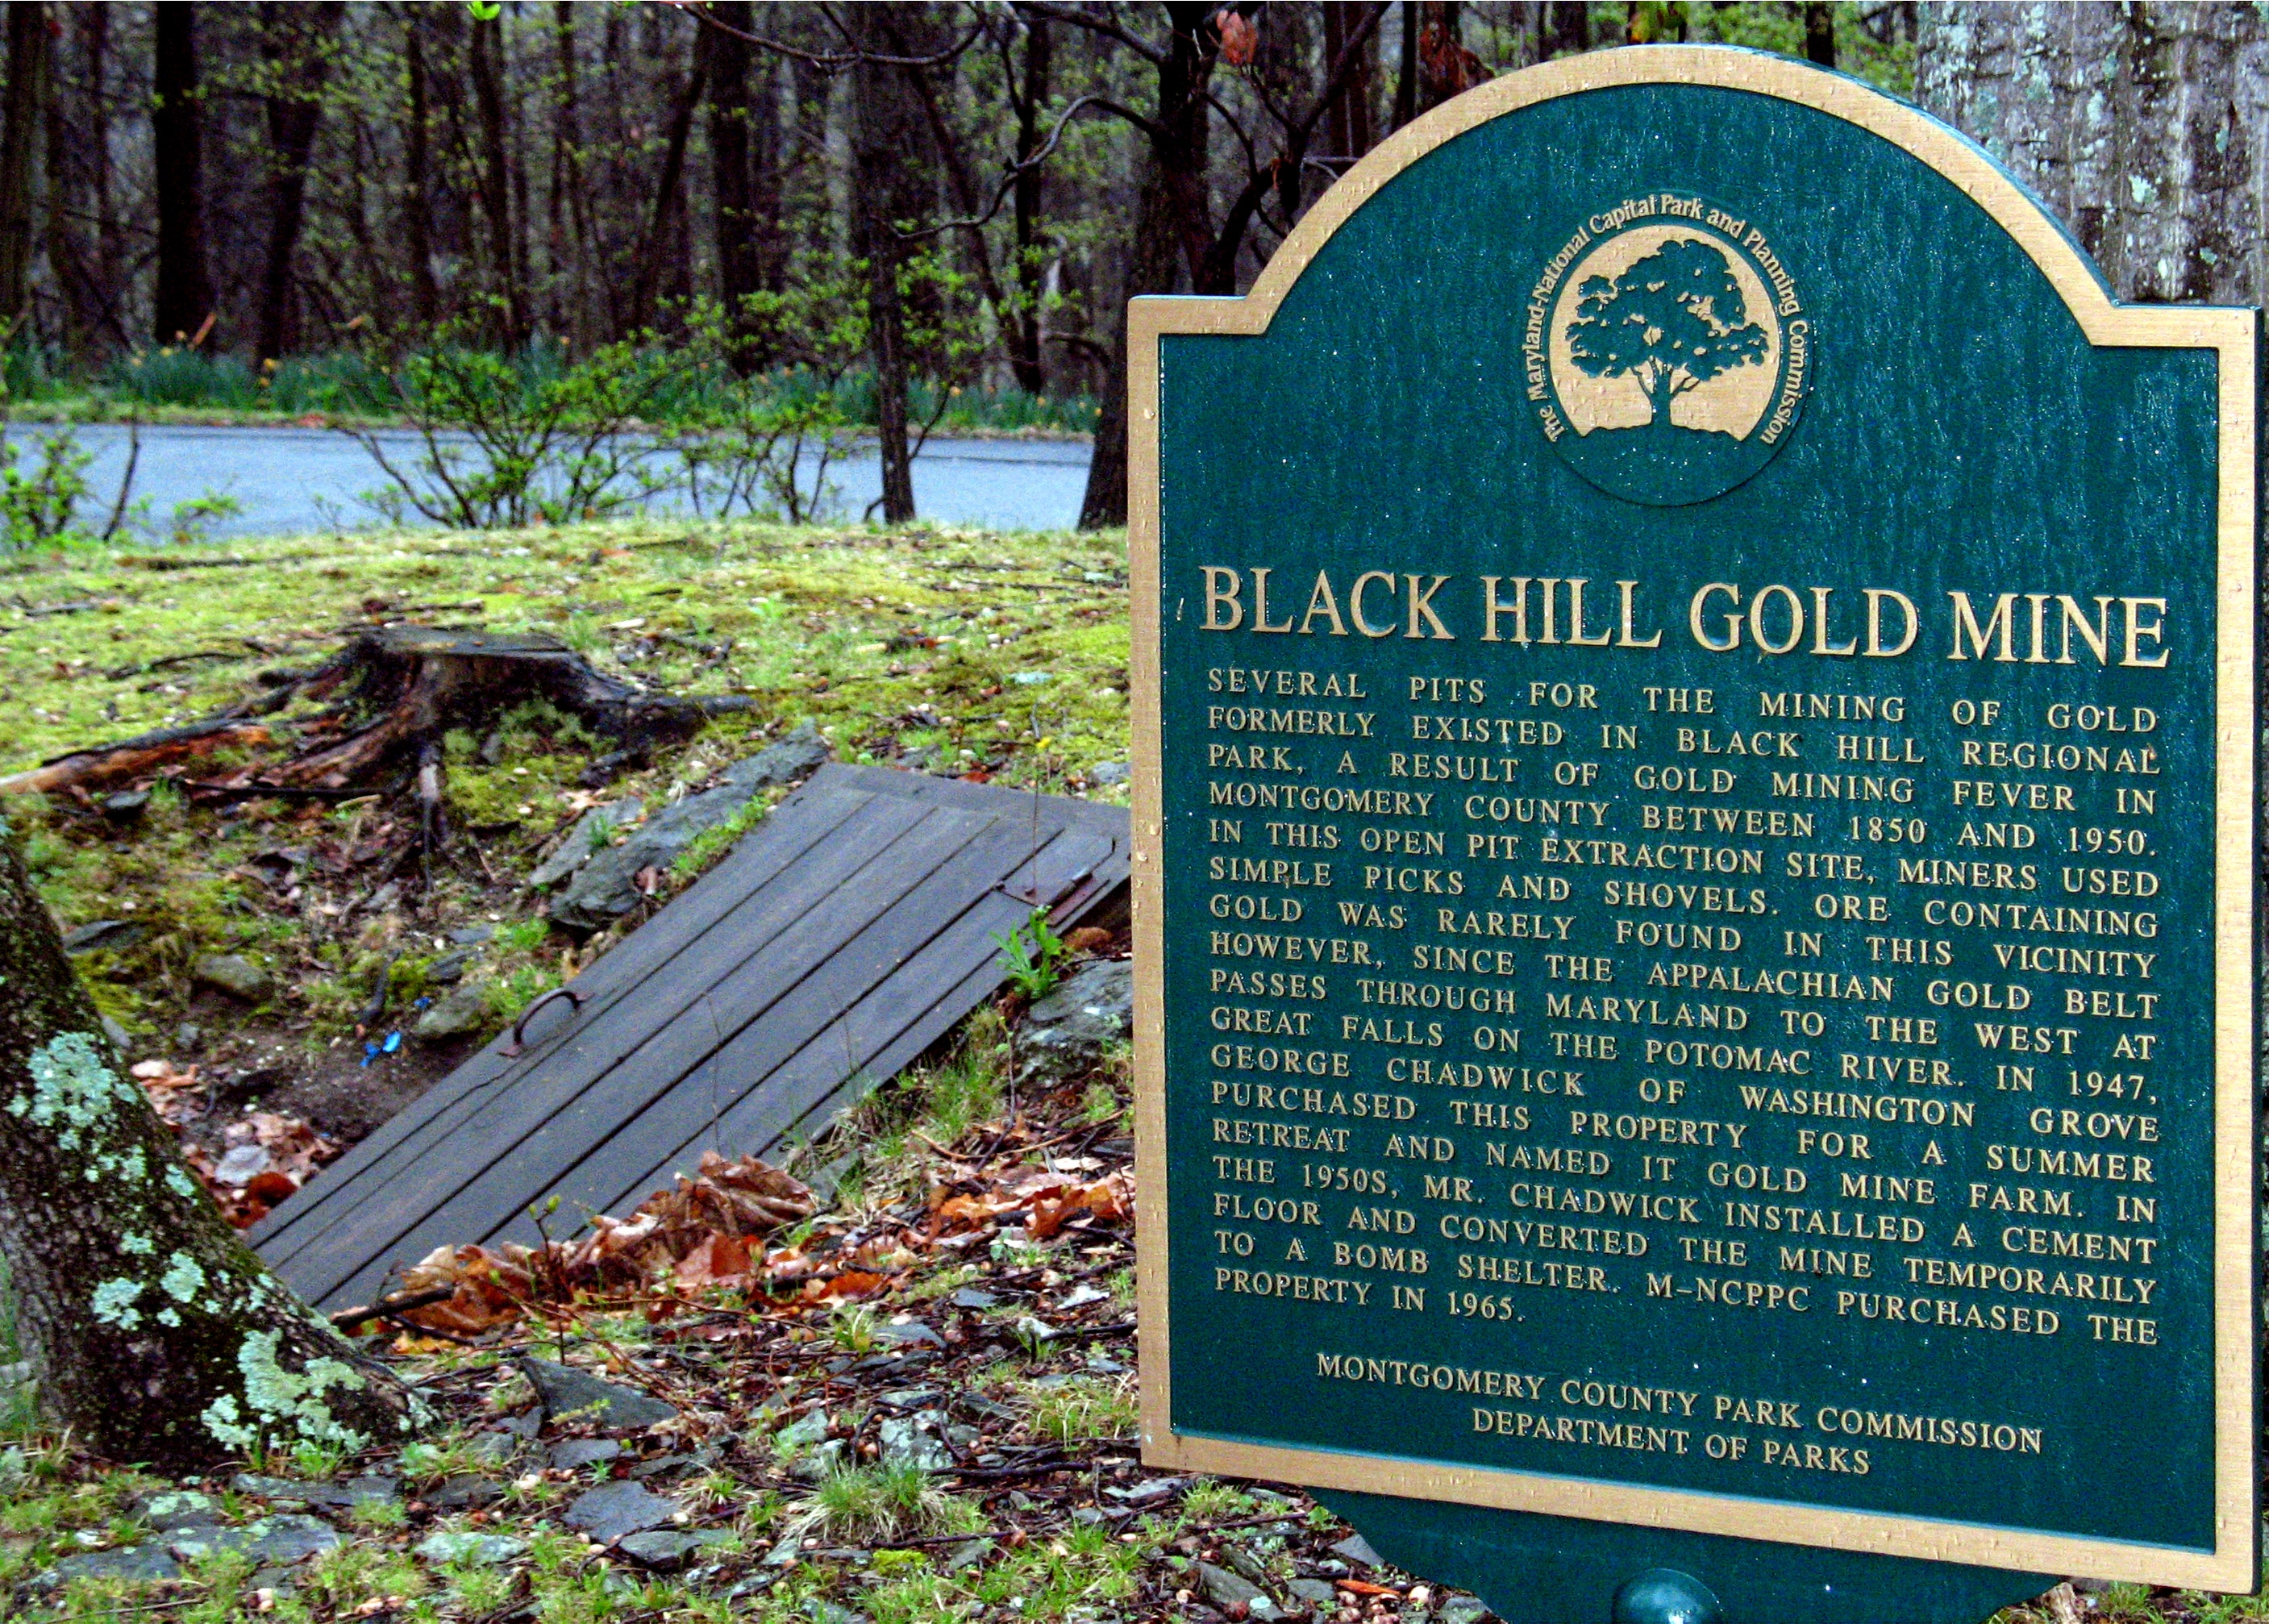 Black Hill Gold Mine